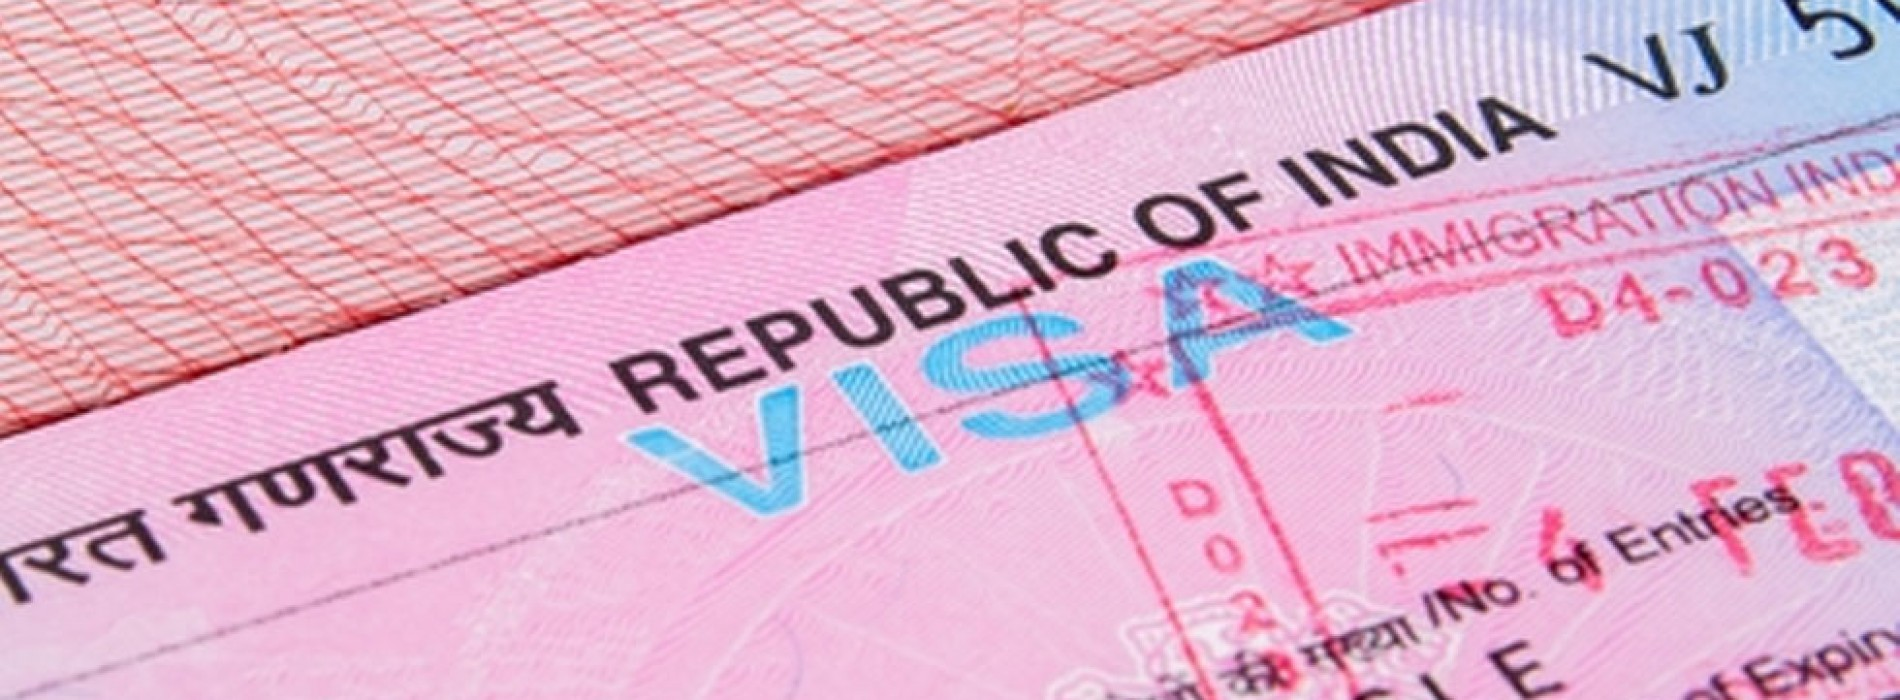 Government to issue e-visas for medical tourists